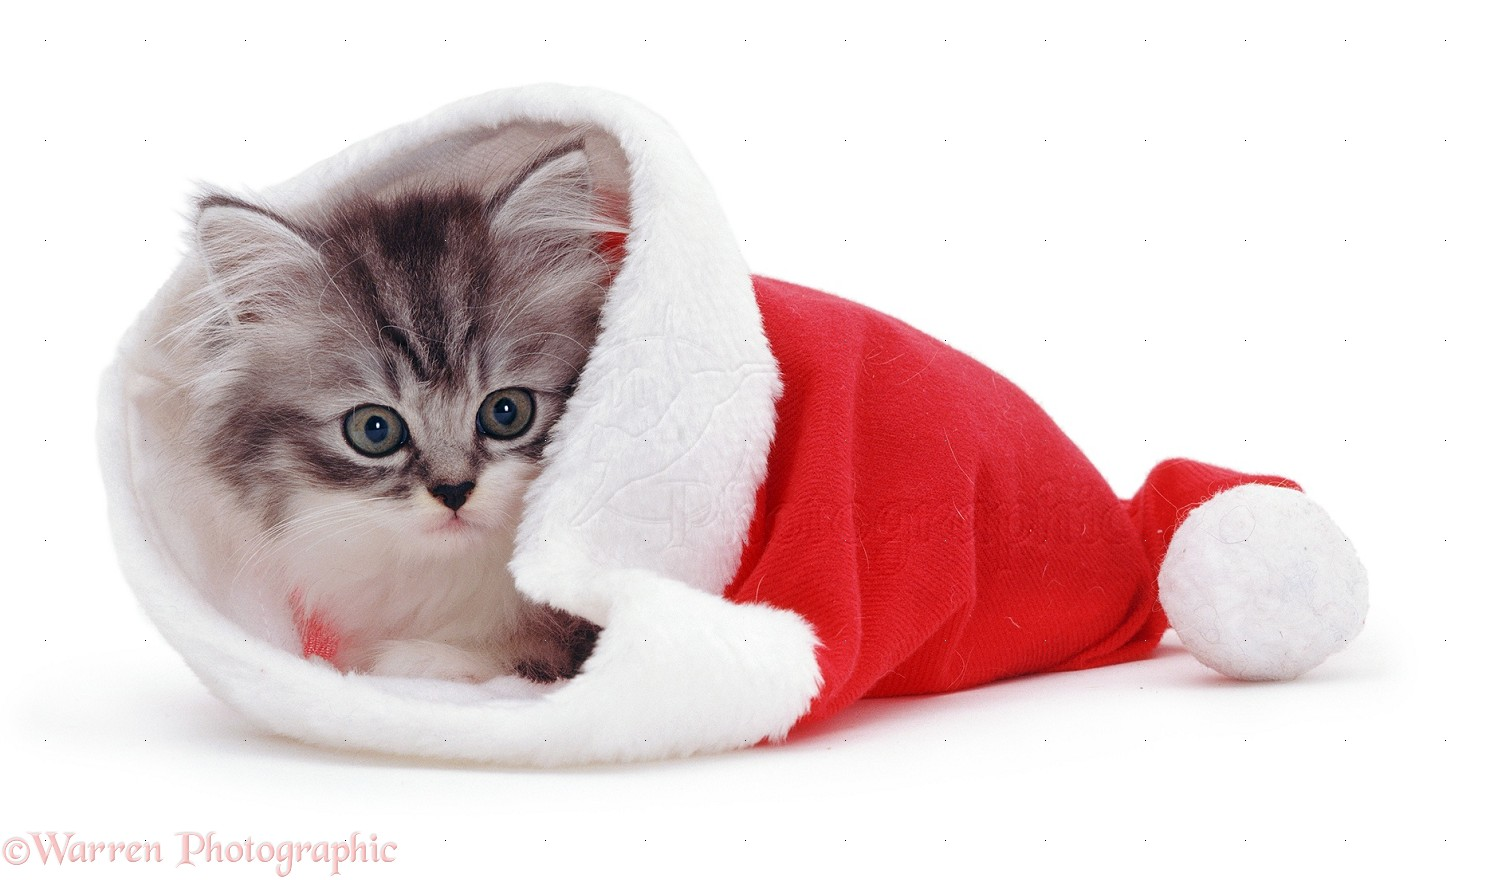 Cute Dog Christmas Wallpapers  HD Wallpapers  ID 11967